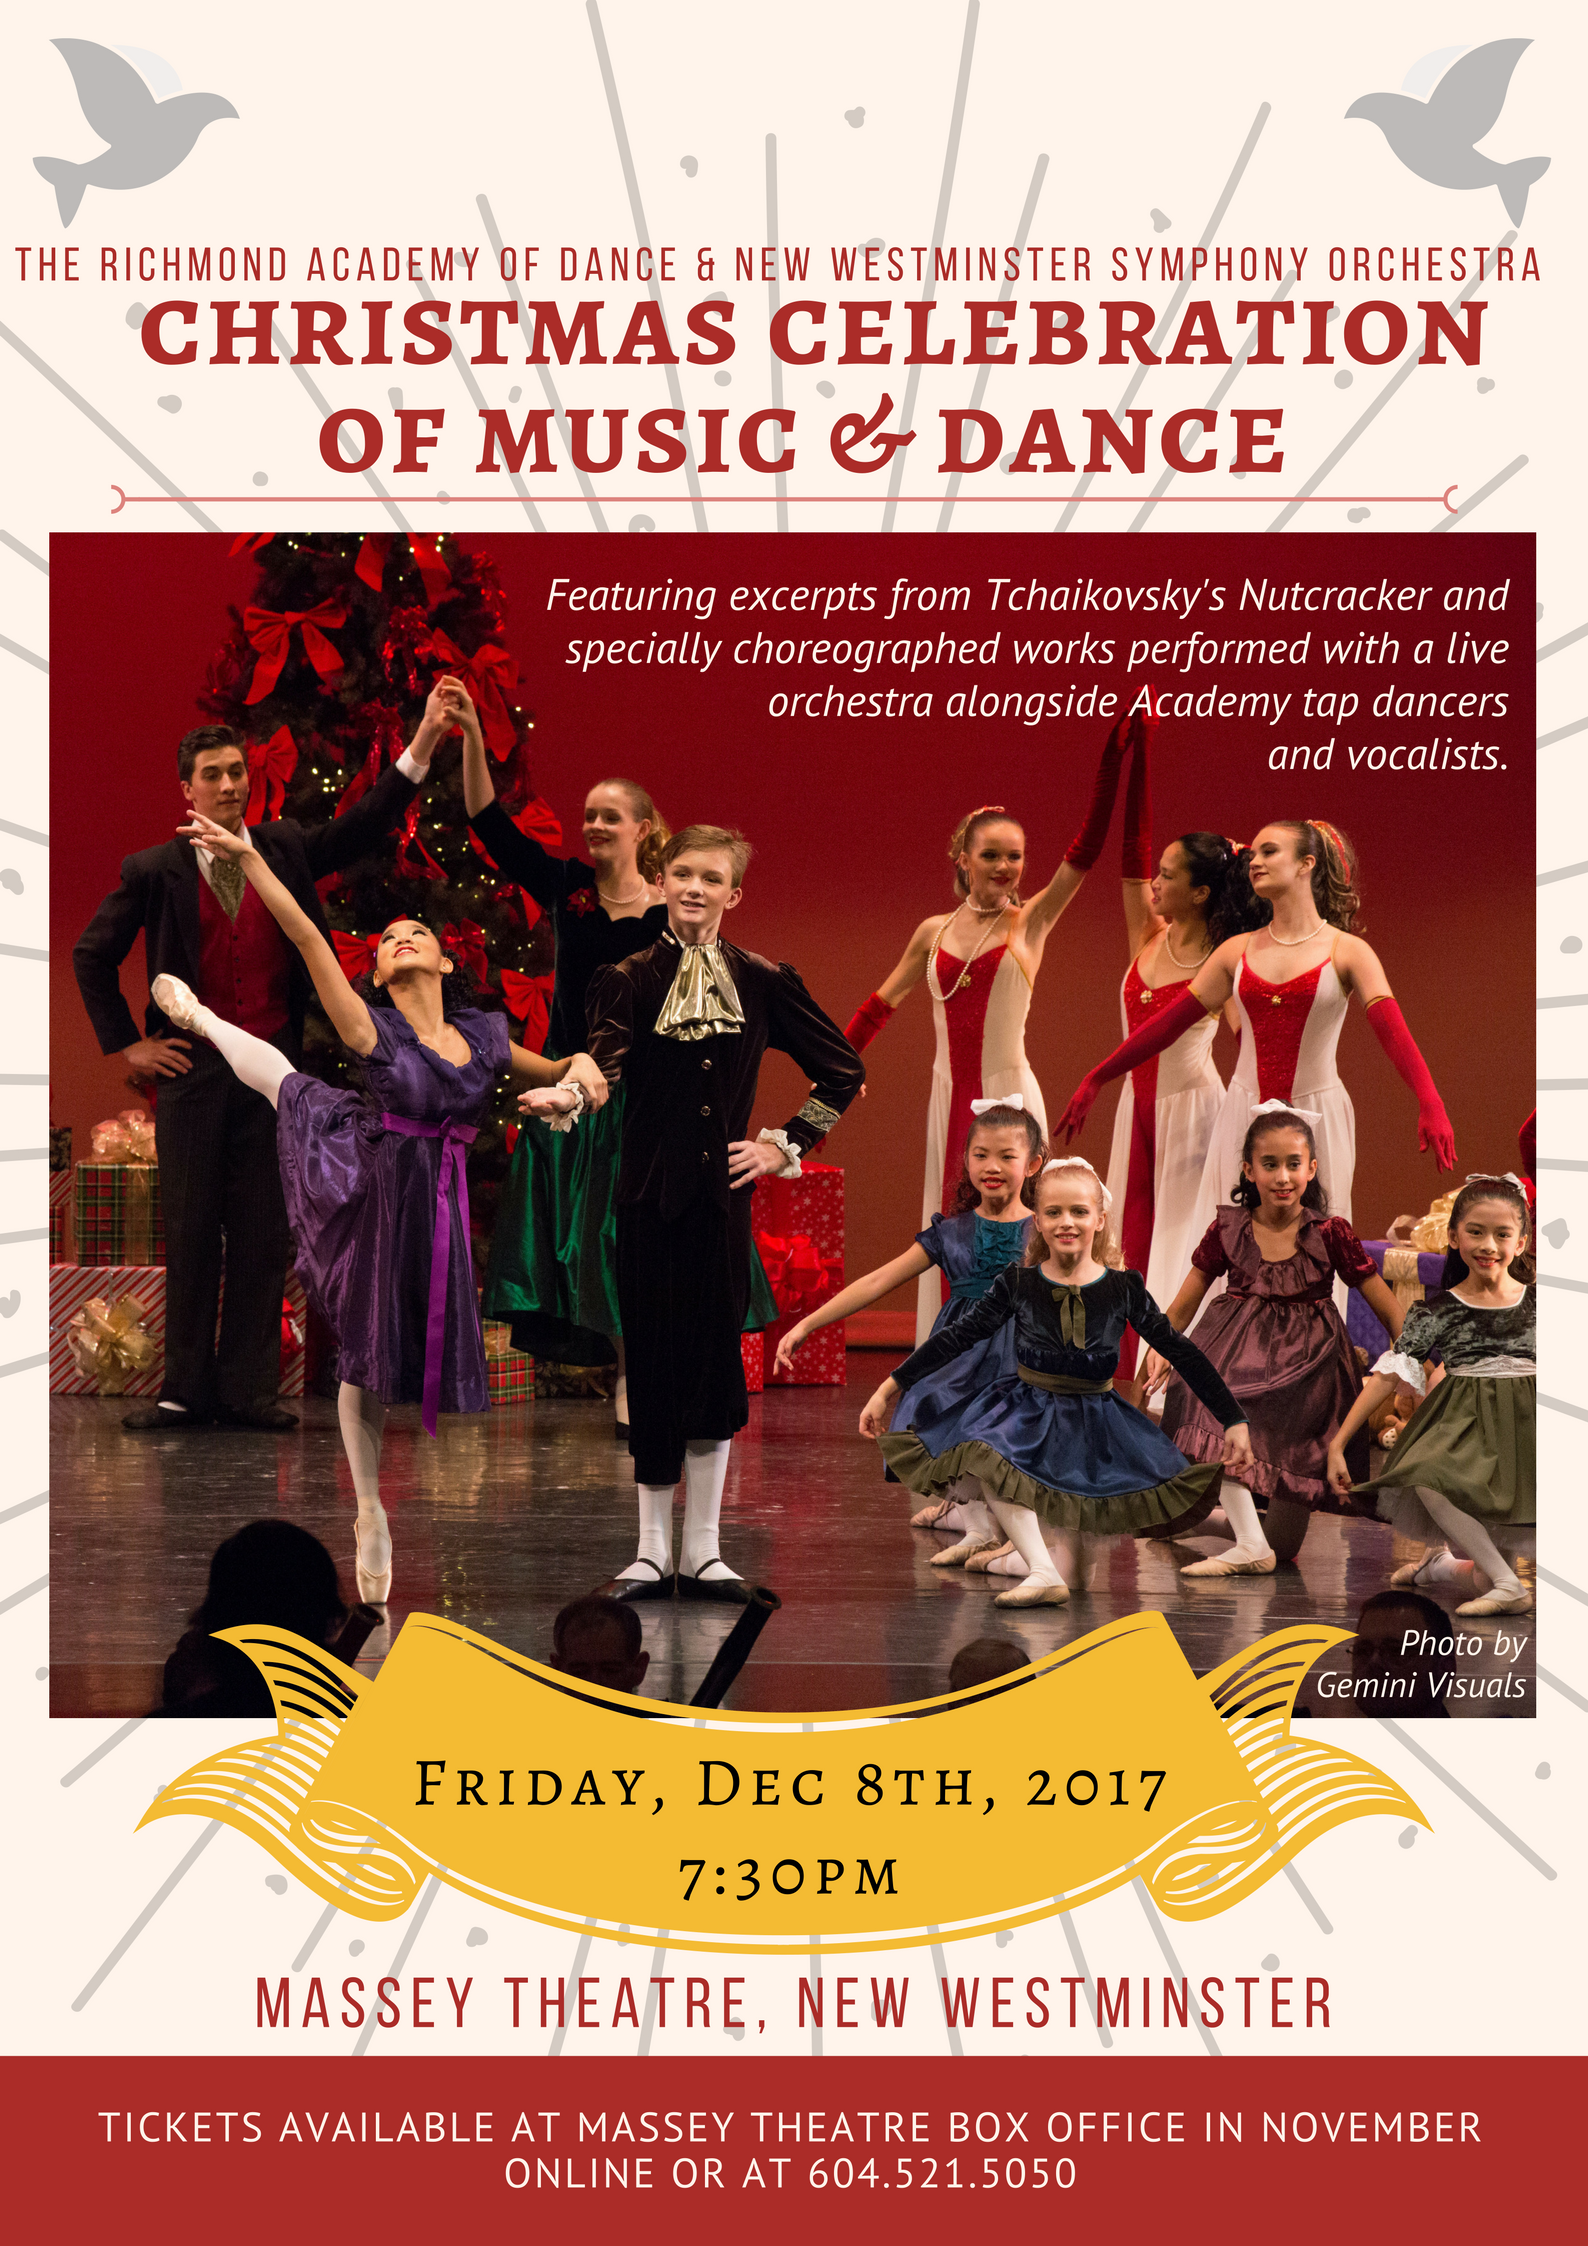 The New Westminster Symphony Orchestra and the Richmond Academy of Dance proudly present their 18th Annual Christmas Dance Concert.